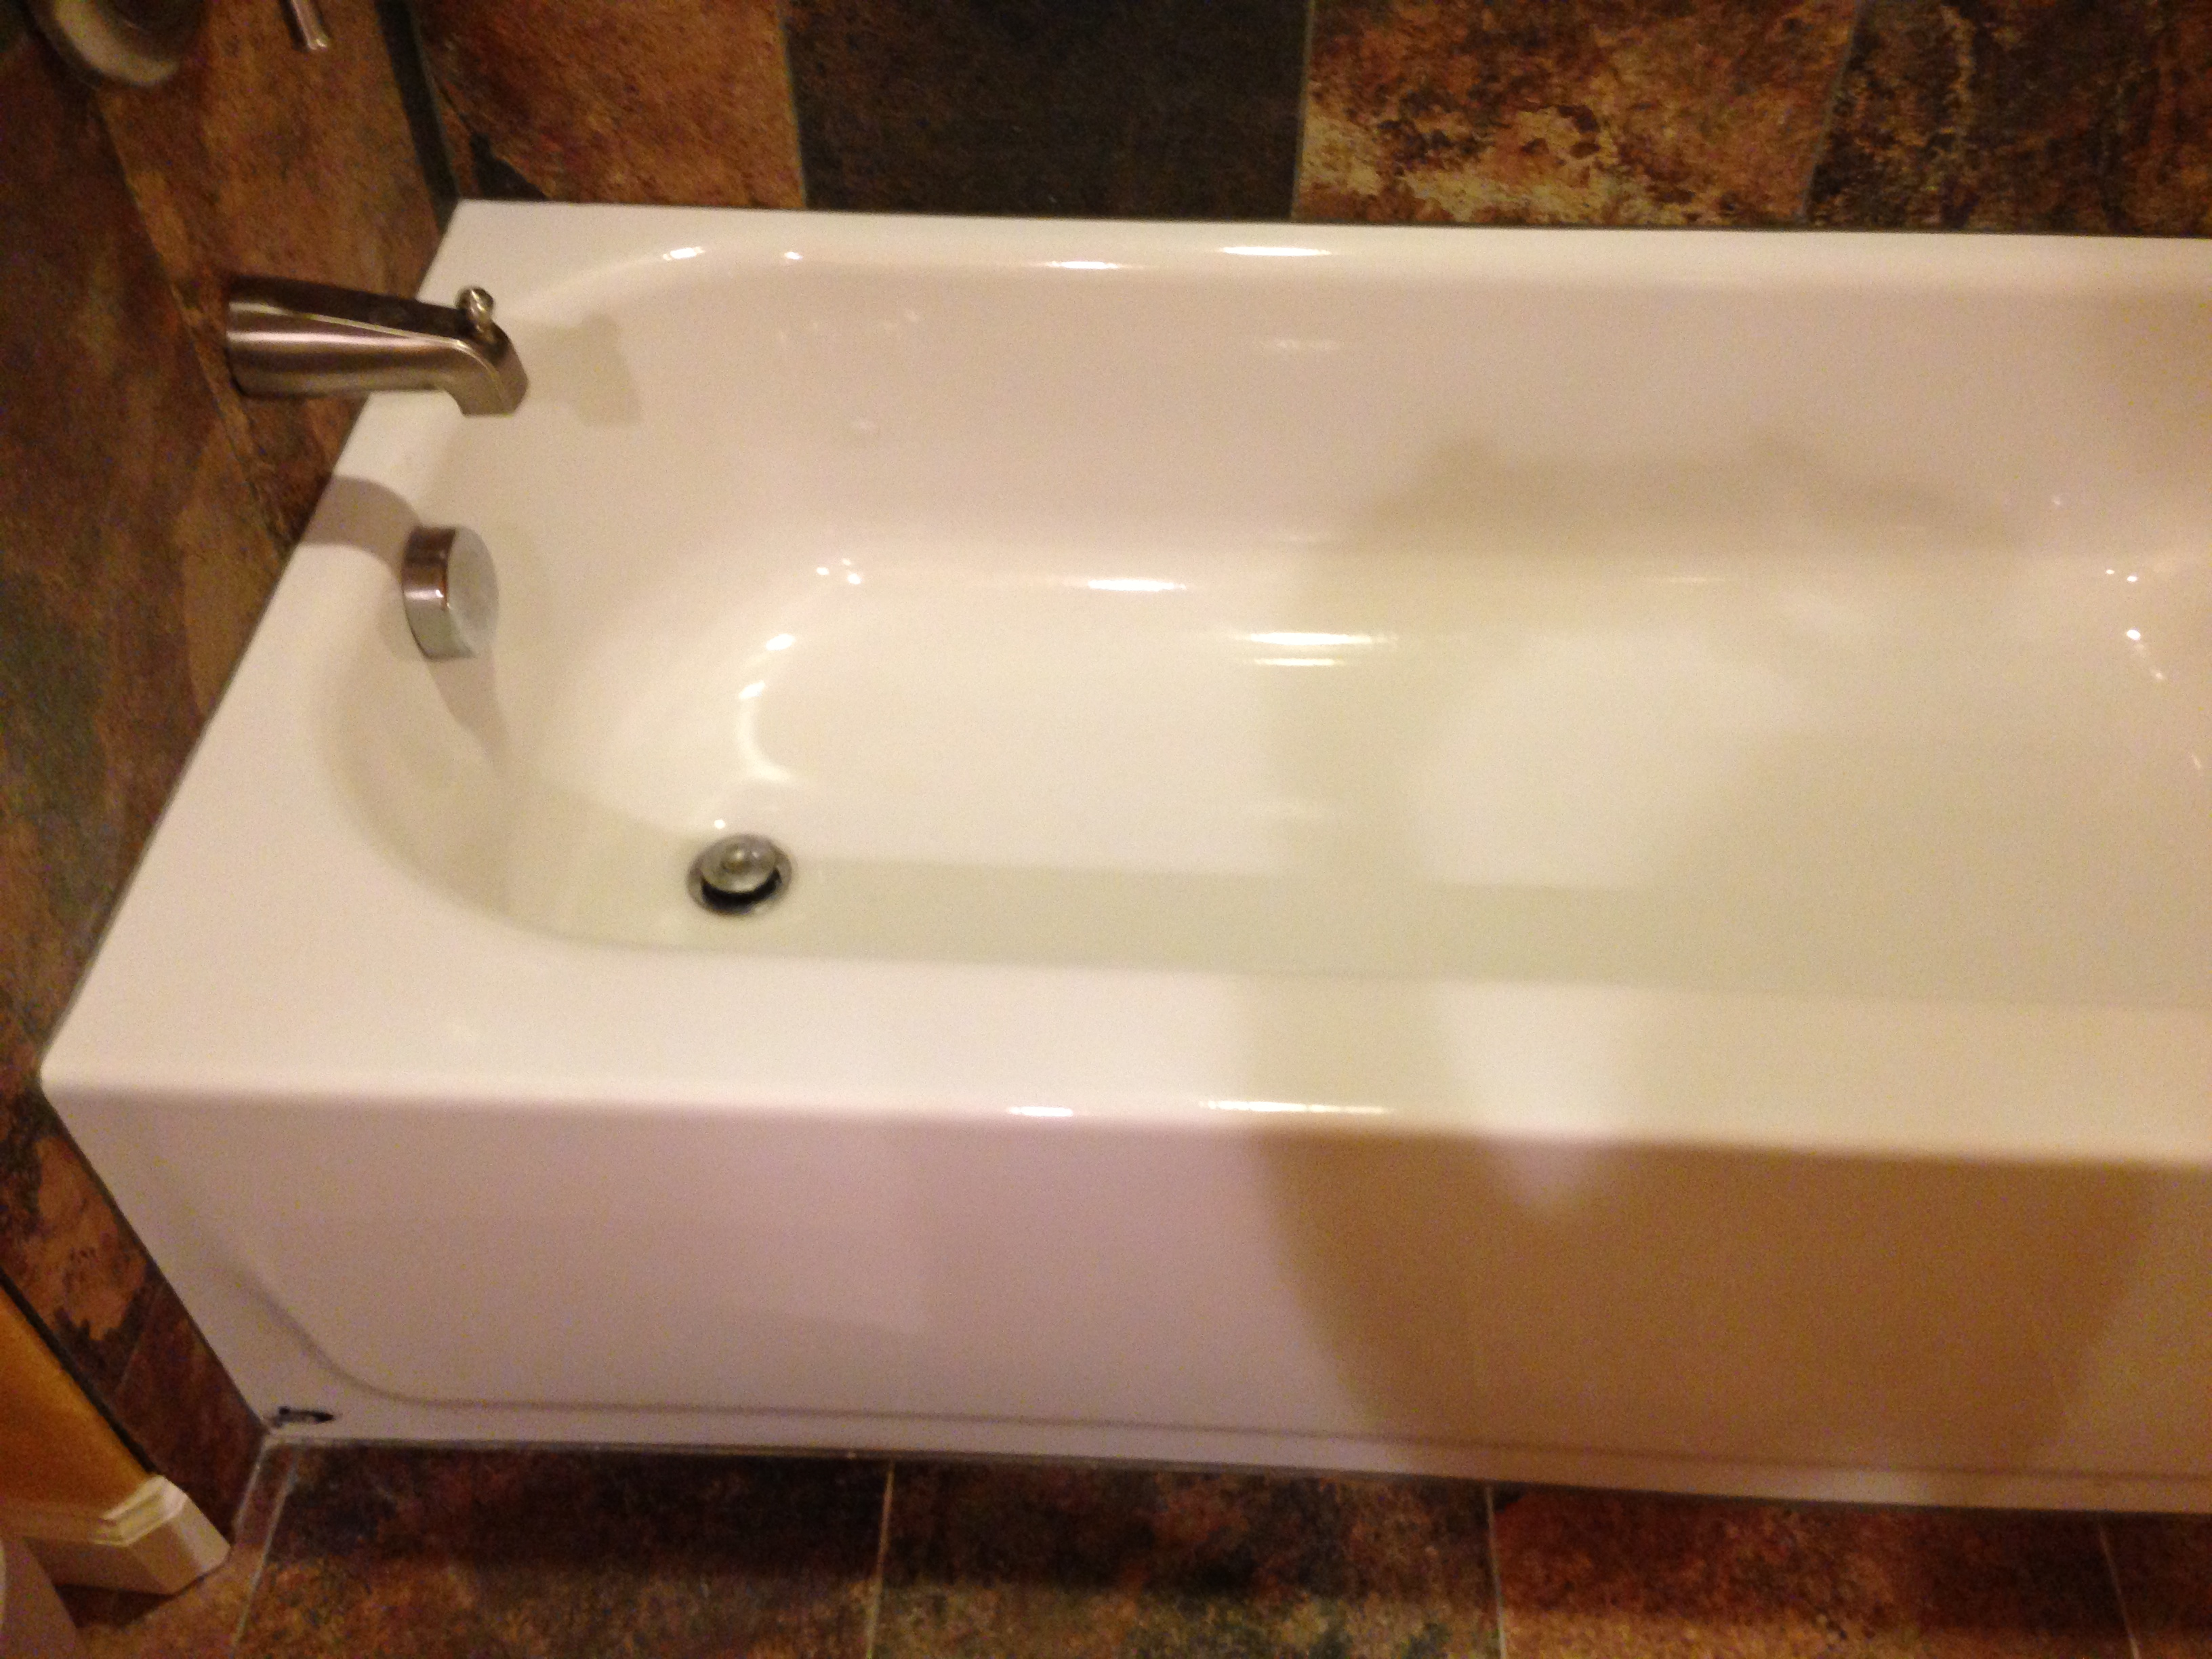 Bathroom sink chip repair - Bathtub Repaired In Colorado